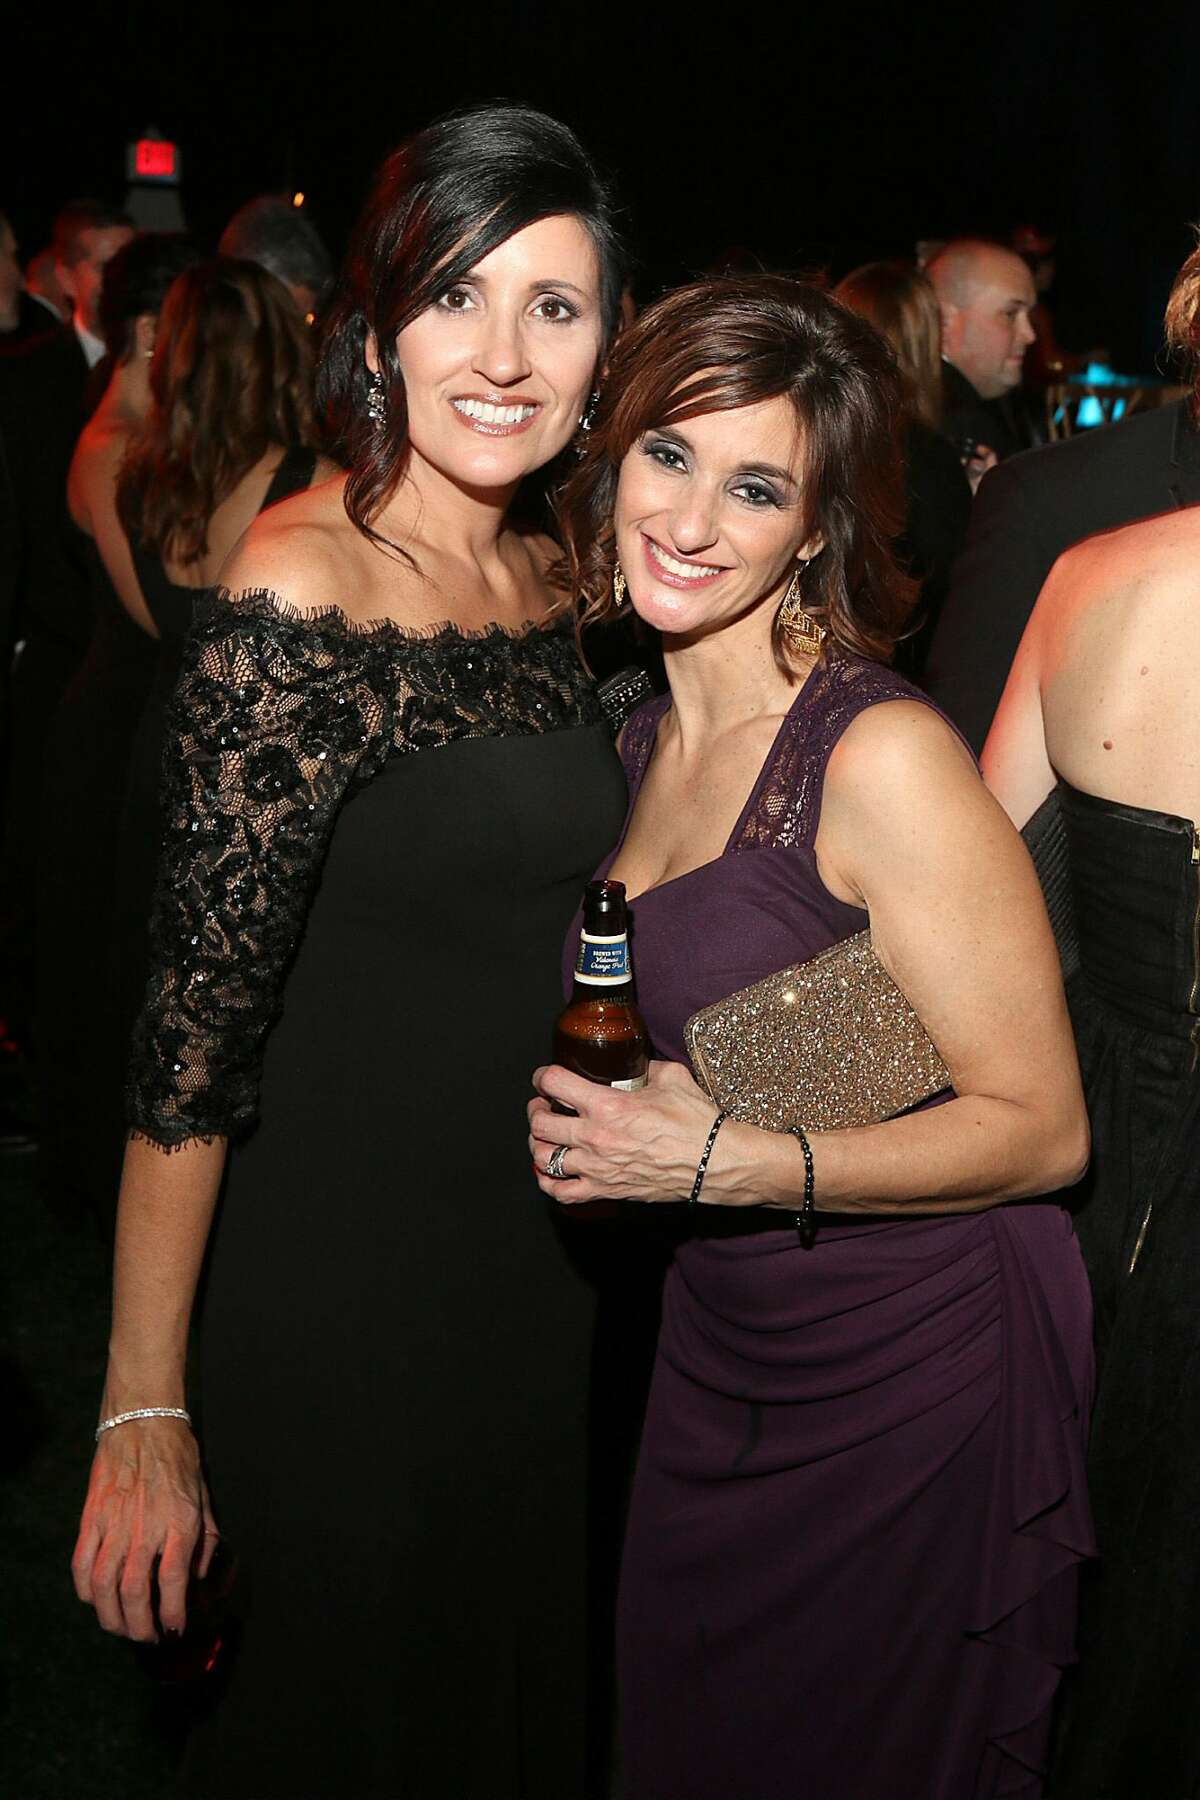 Were you Seen at the 33rd Annual Dancing in the Woods Gala at the Armory at Sage in Albany on Friday, Dec. 2, 2016? The event raises funds for the Melodies Center for Childhood Cancer & Blood Disorders at the Bernard & Millie Duker Children's Hospital at Albany Medical Center.